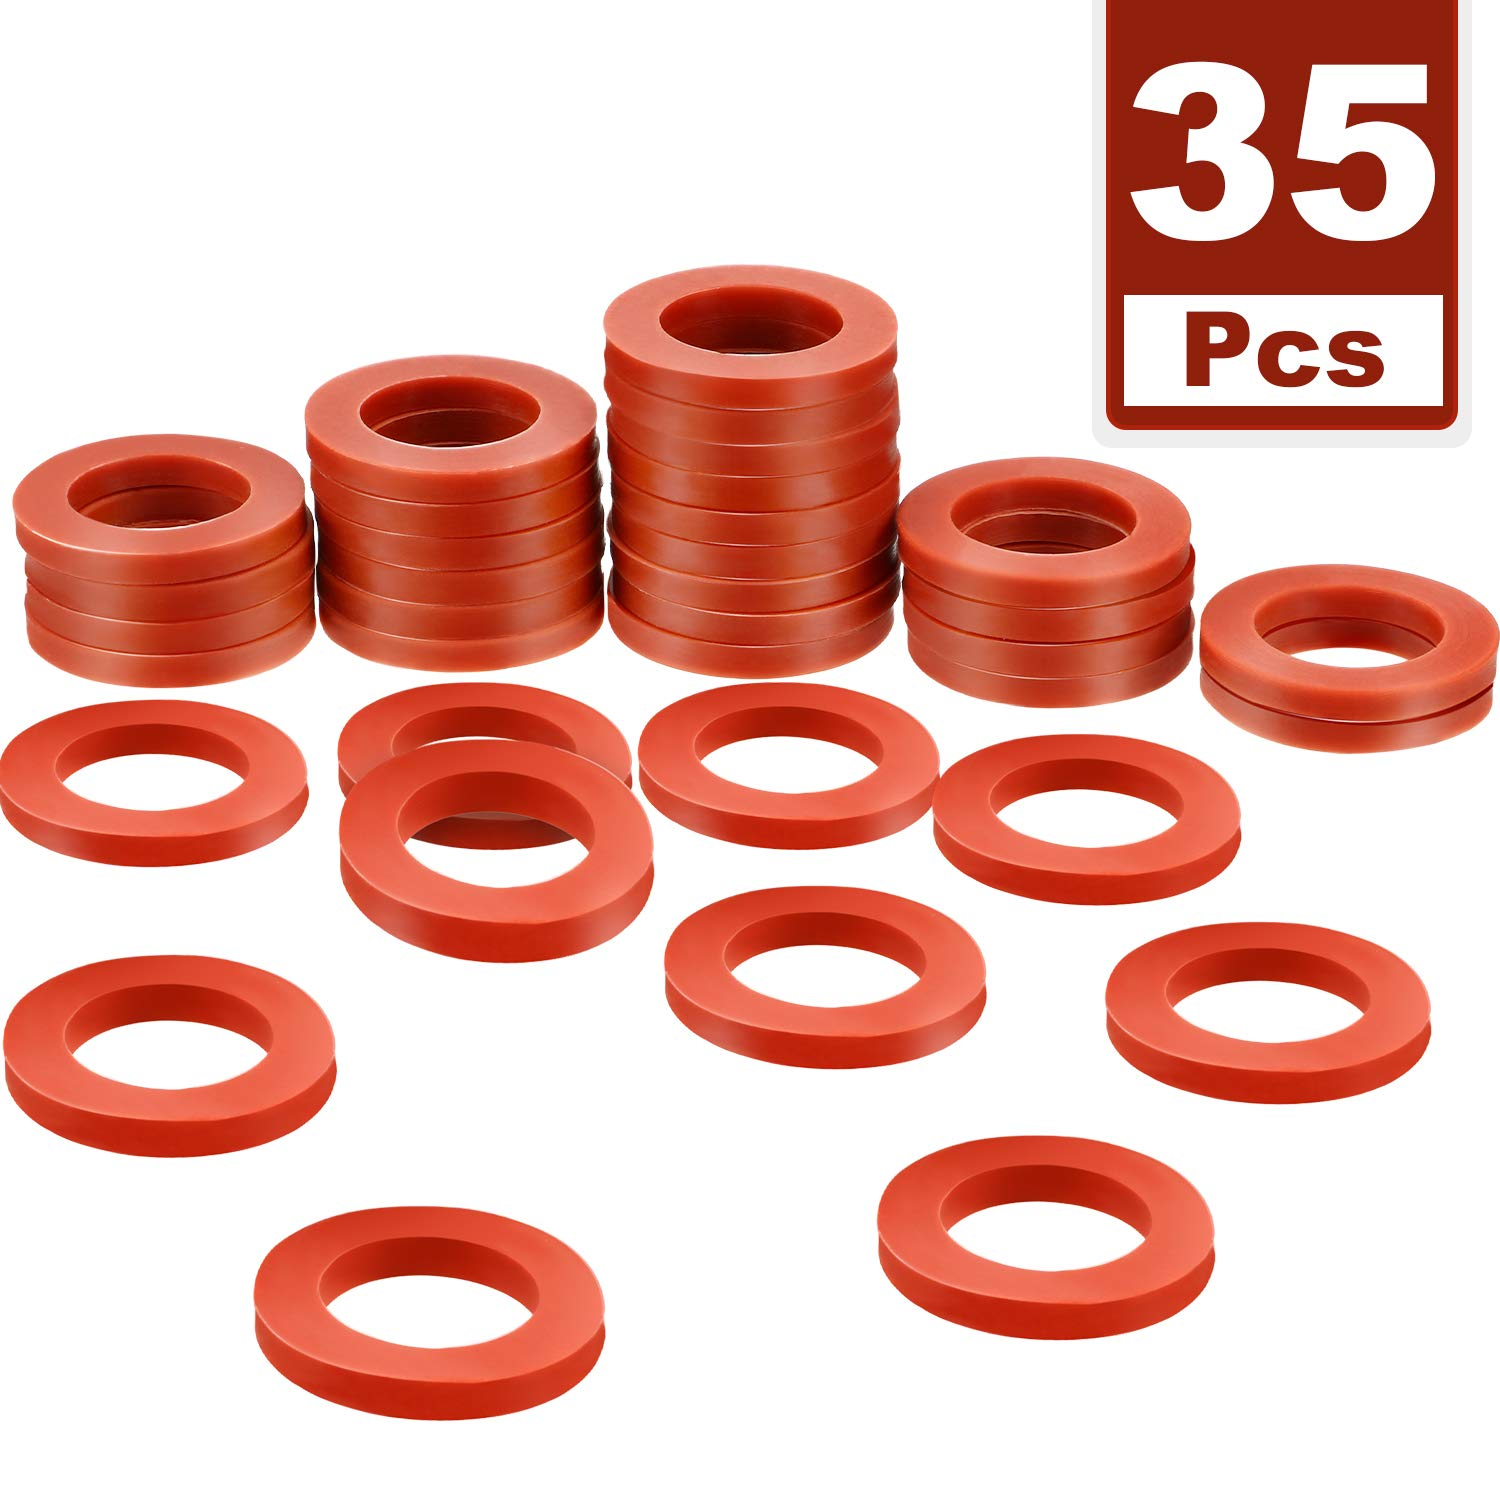 Tatuo 35 Pack Garden Hose Washers Silicone Rubber Washers Seals O Rings Red Soft Silicone Gasket Fittings for 3/4 Inch Garden Hose and Water Faucet